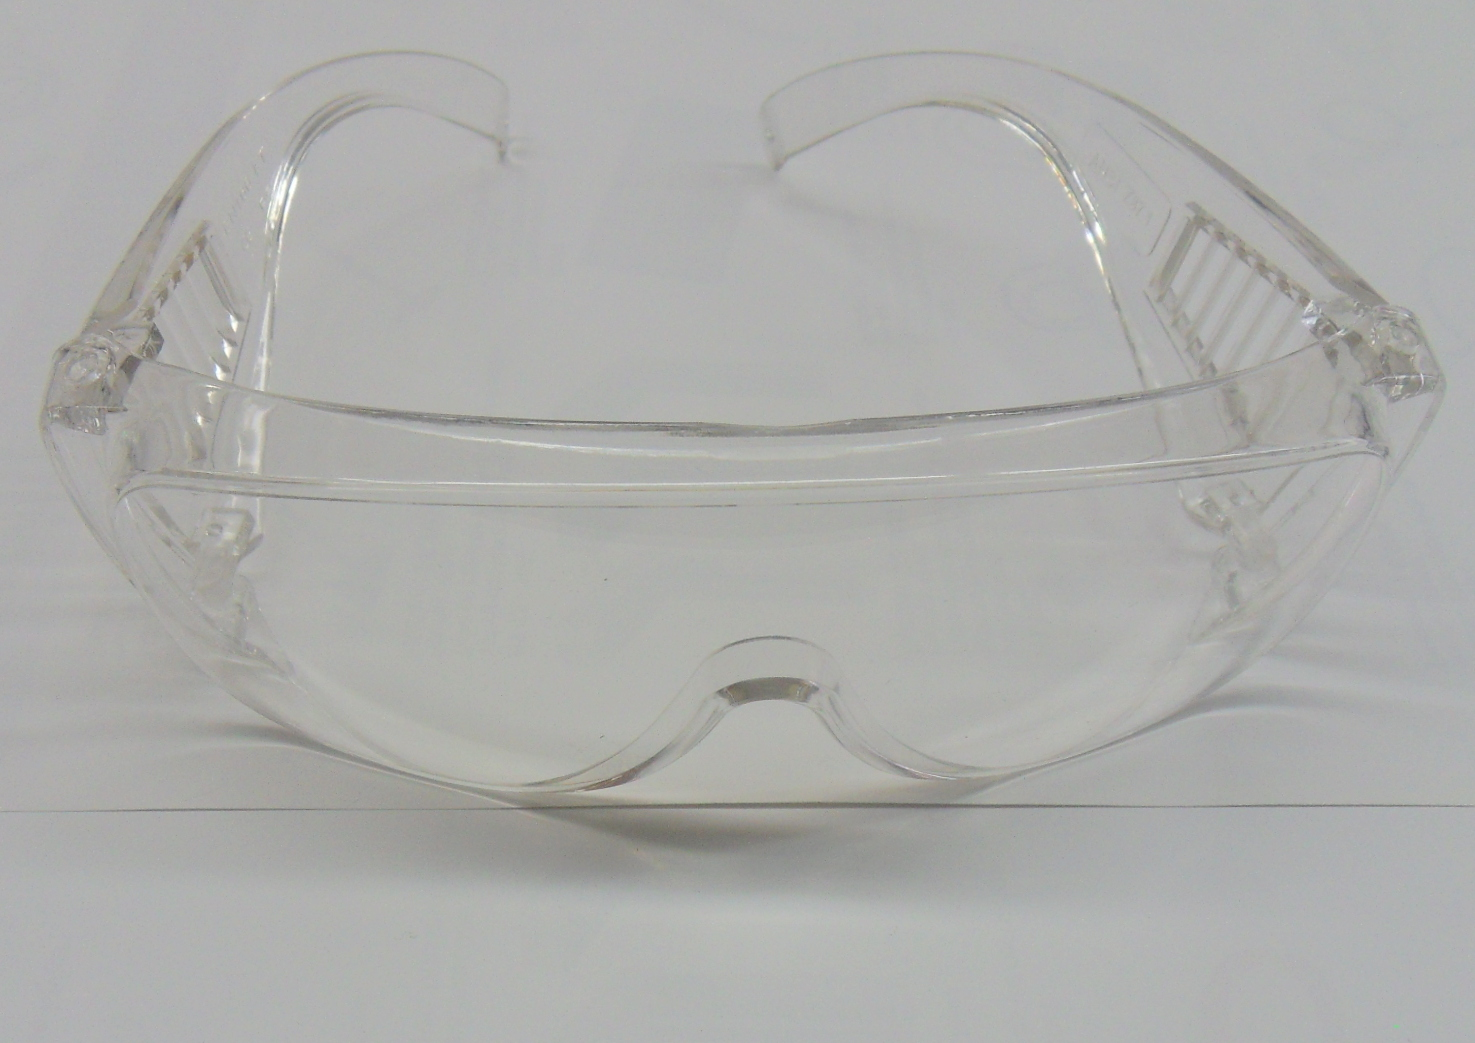 Lab Protection Glasses